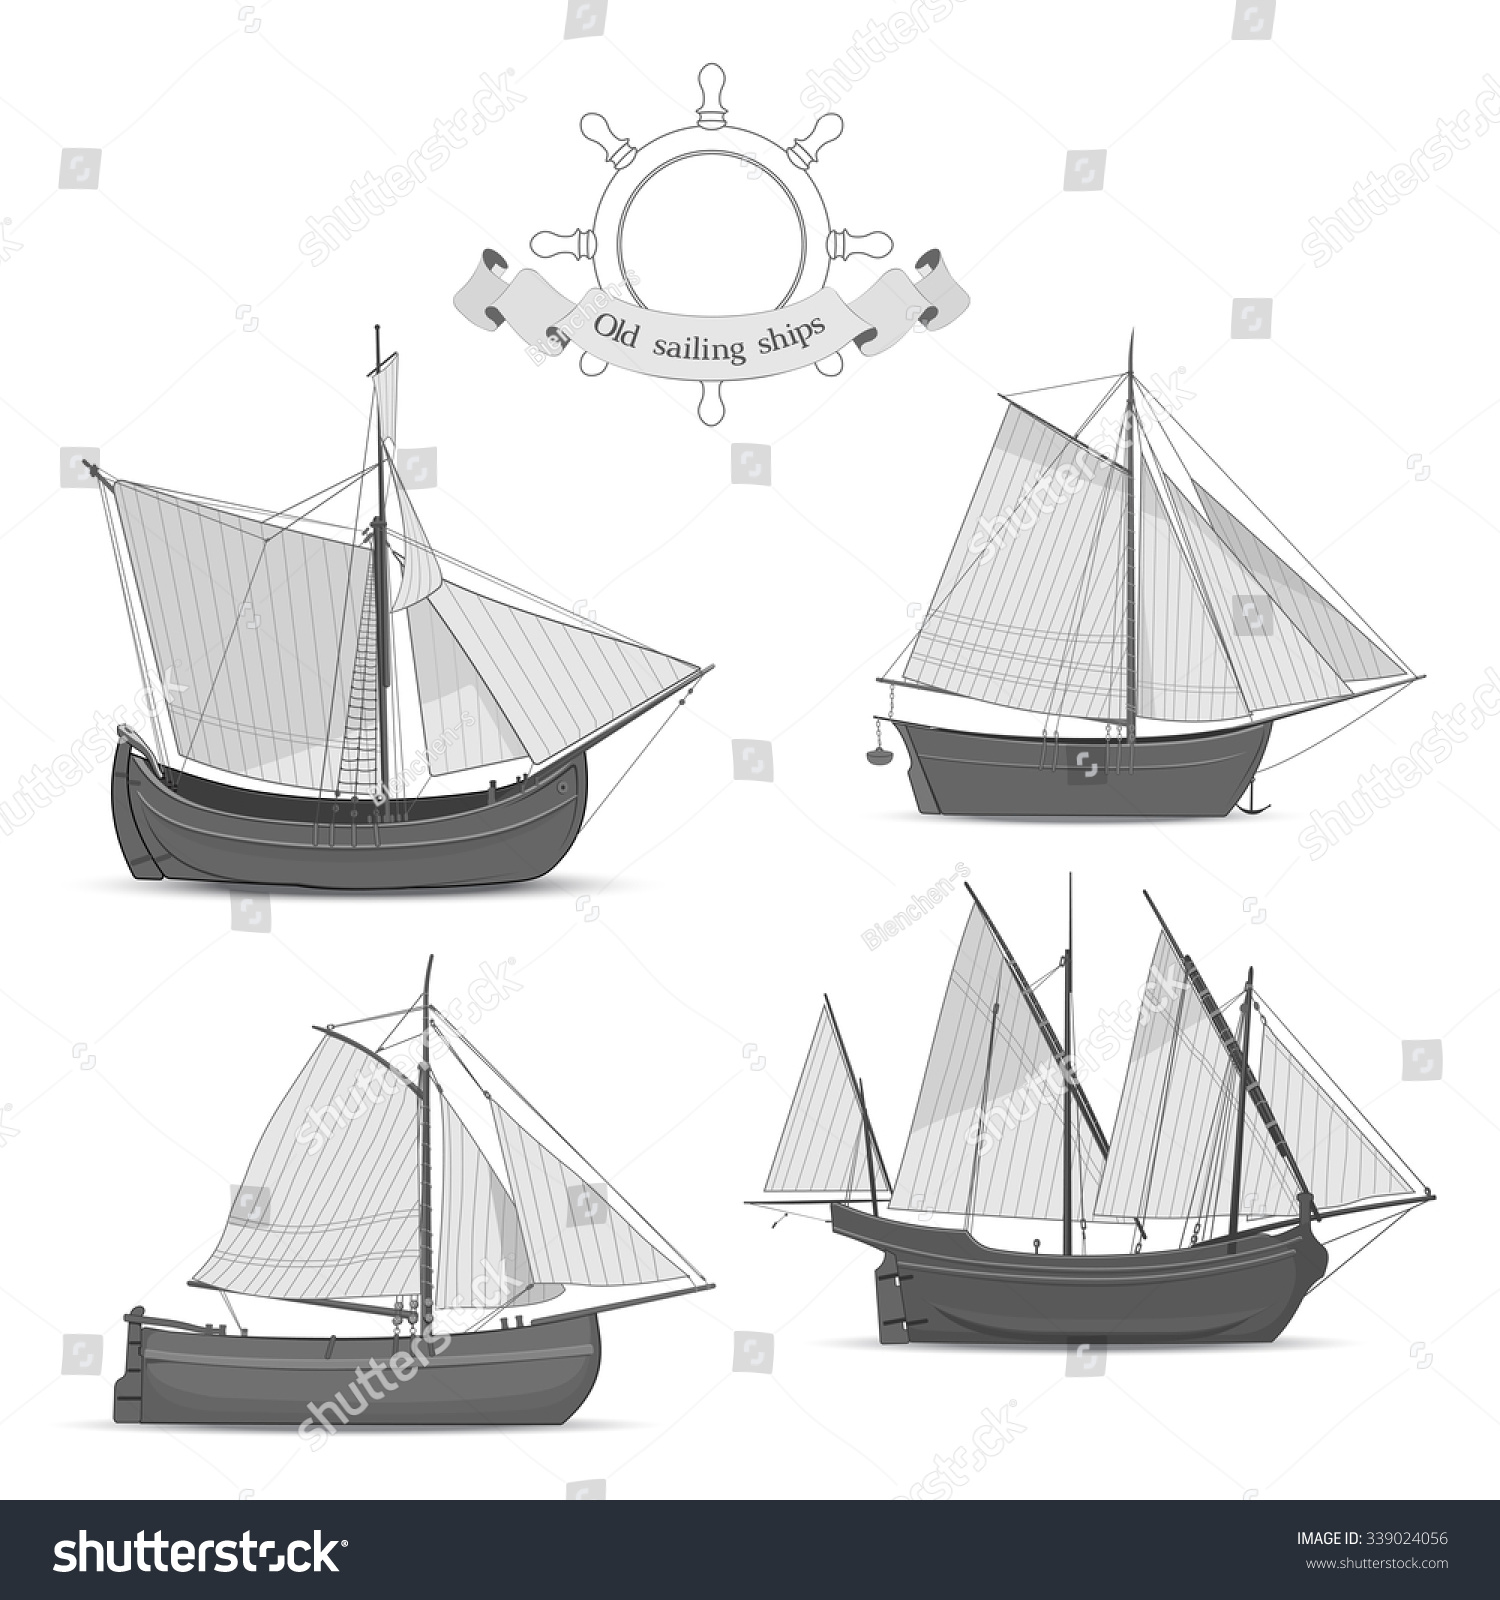 Black and white sketches of sailing ships Set of vector